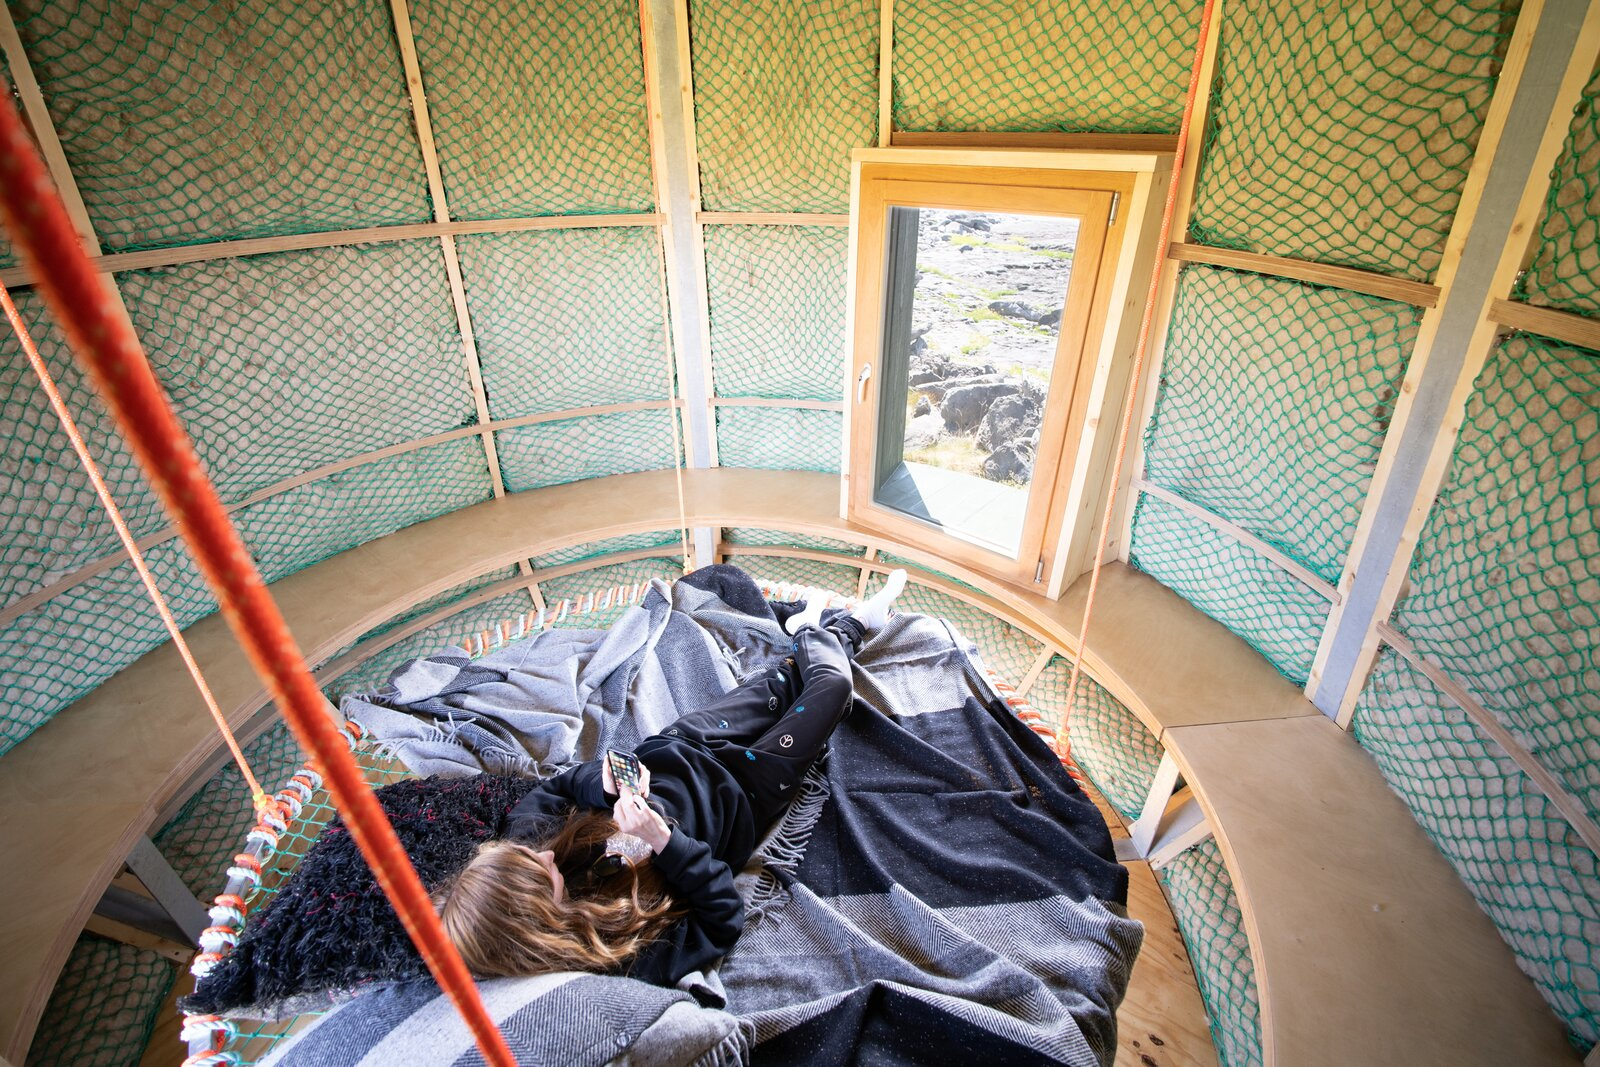 Photo 7 of 12 in An Off-Grid Artist's Retreat Pops Up on an Island Near Ireland